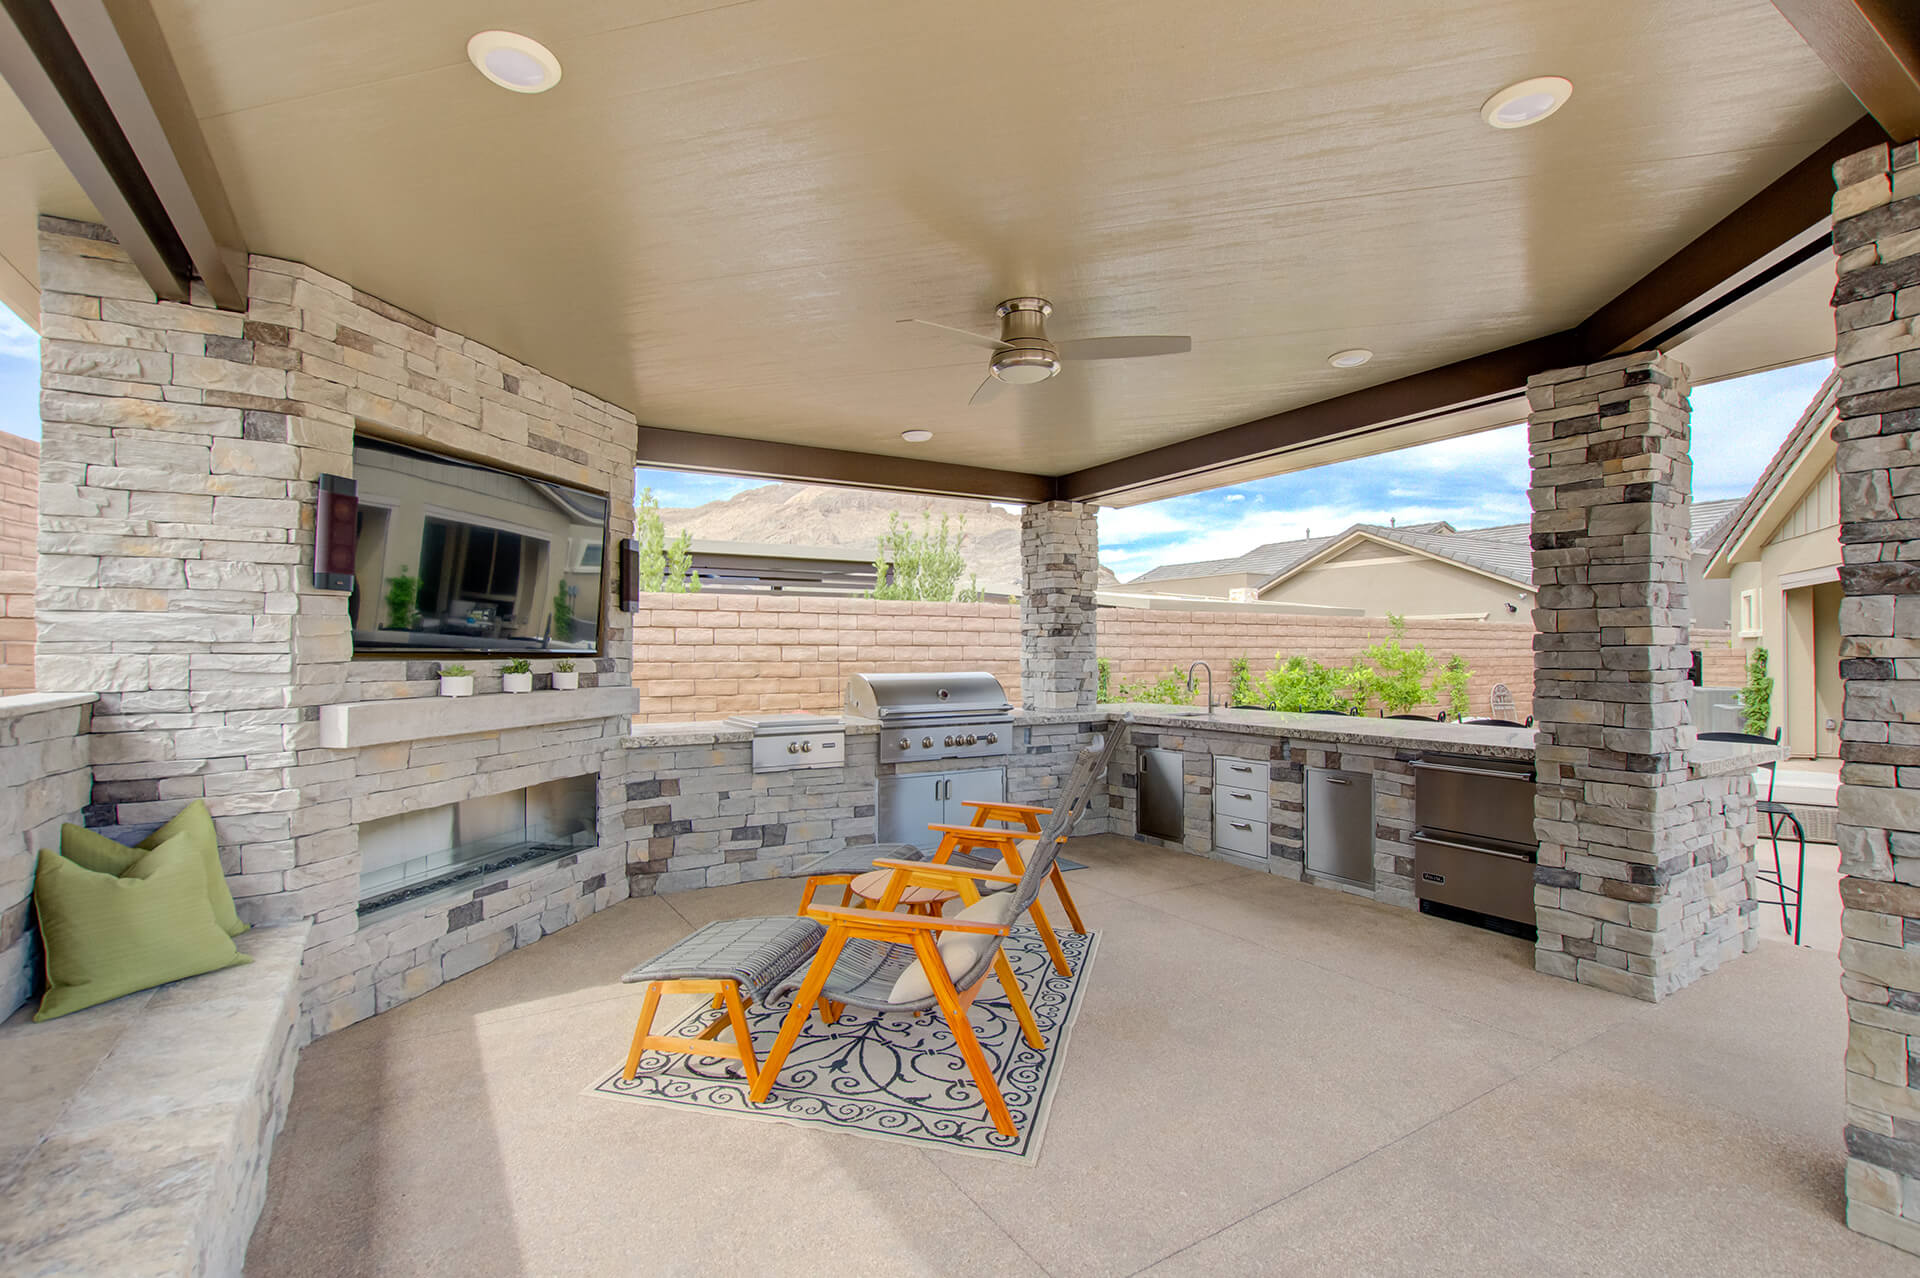 Media Wall with Recessed Outdoor TV and a Regency Outdoor Fireplace